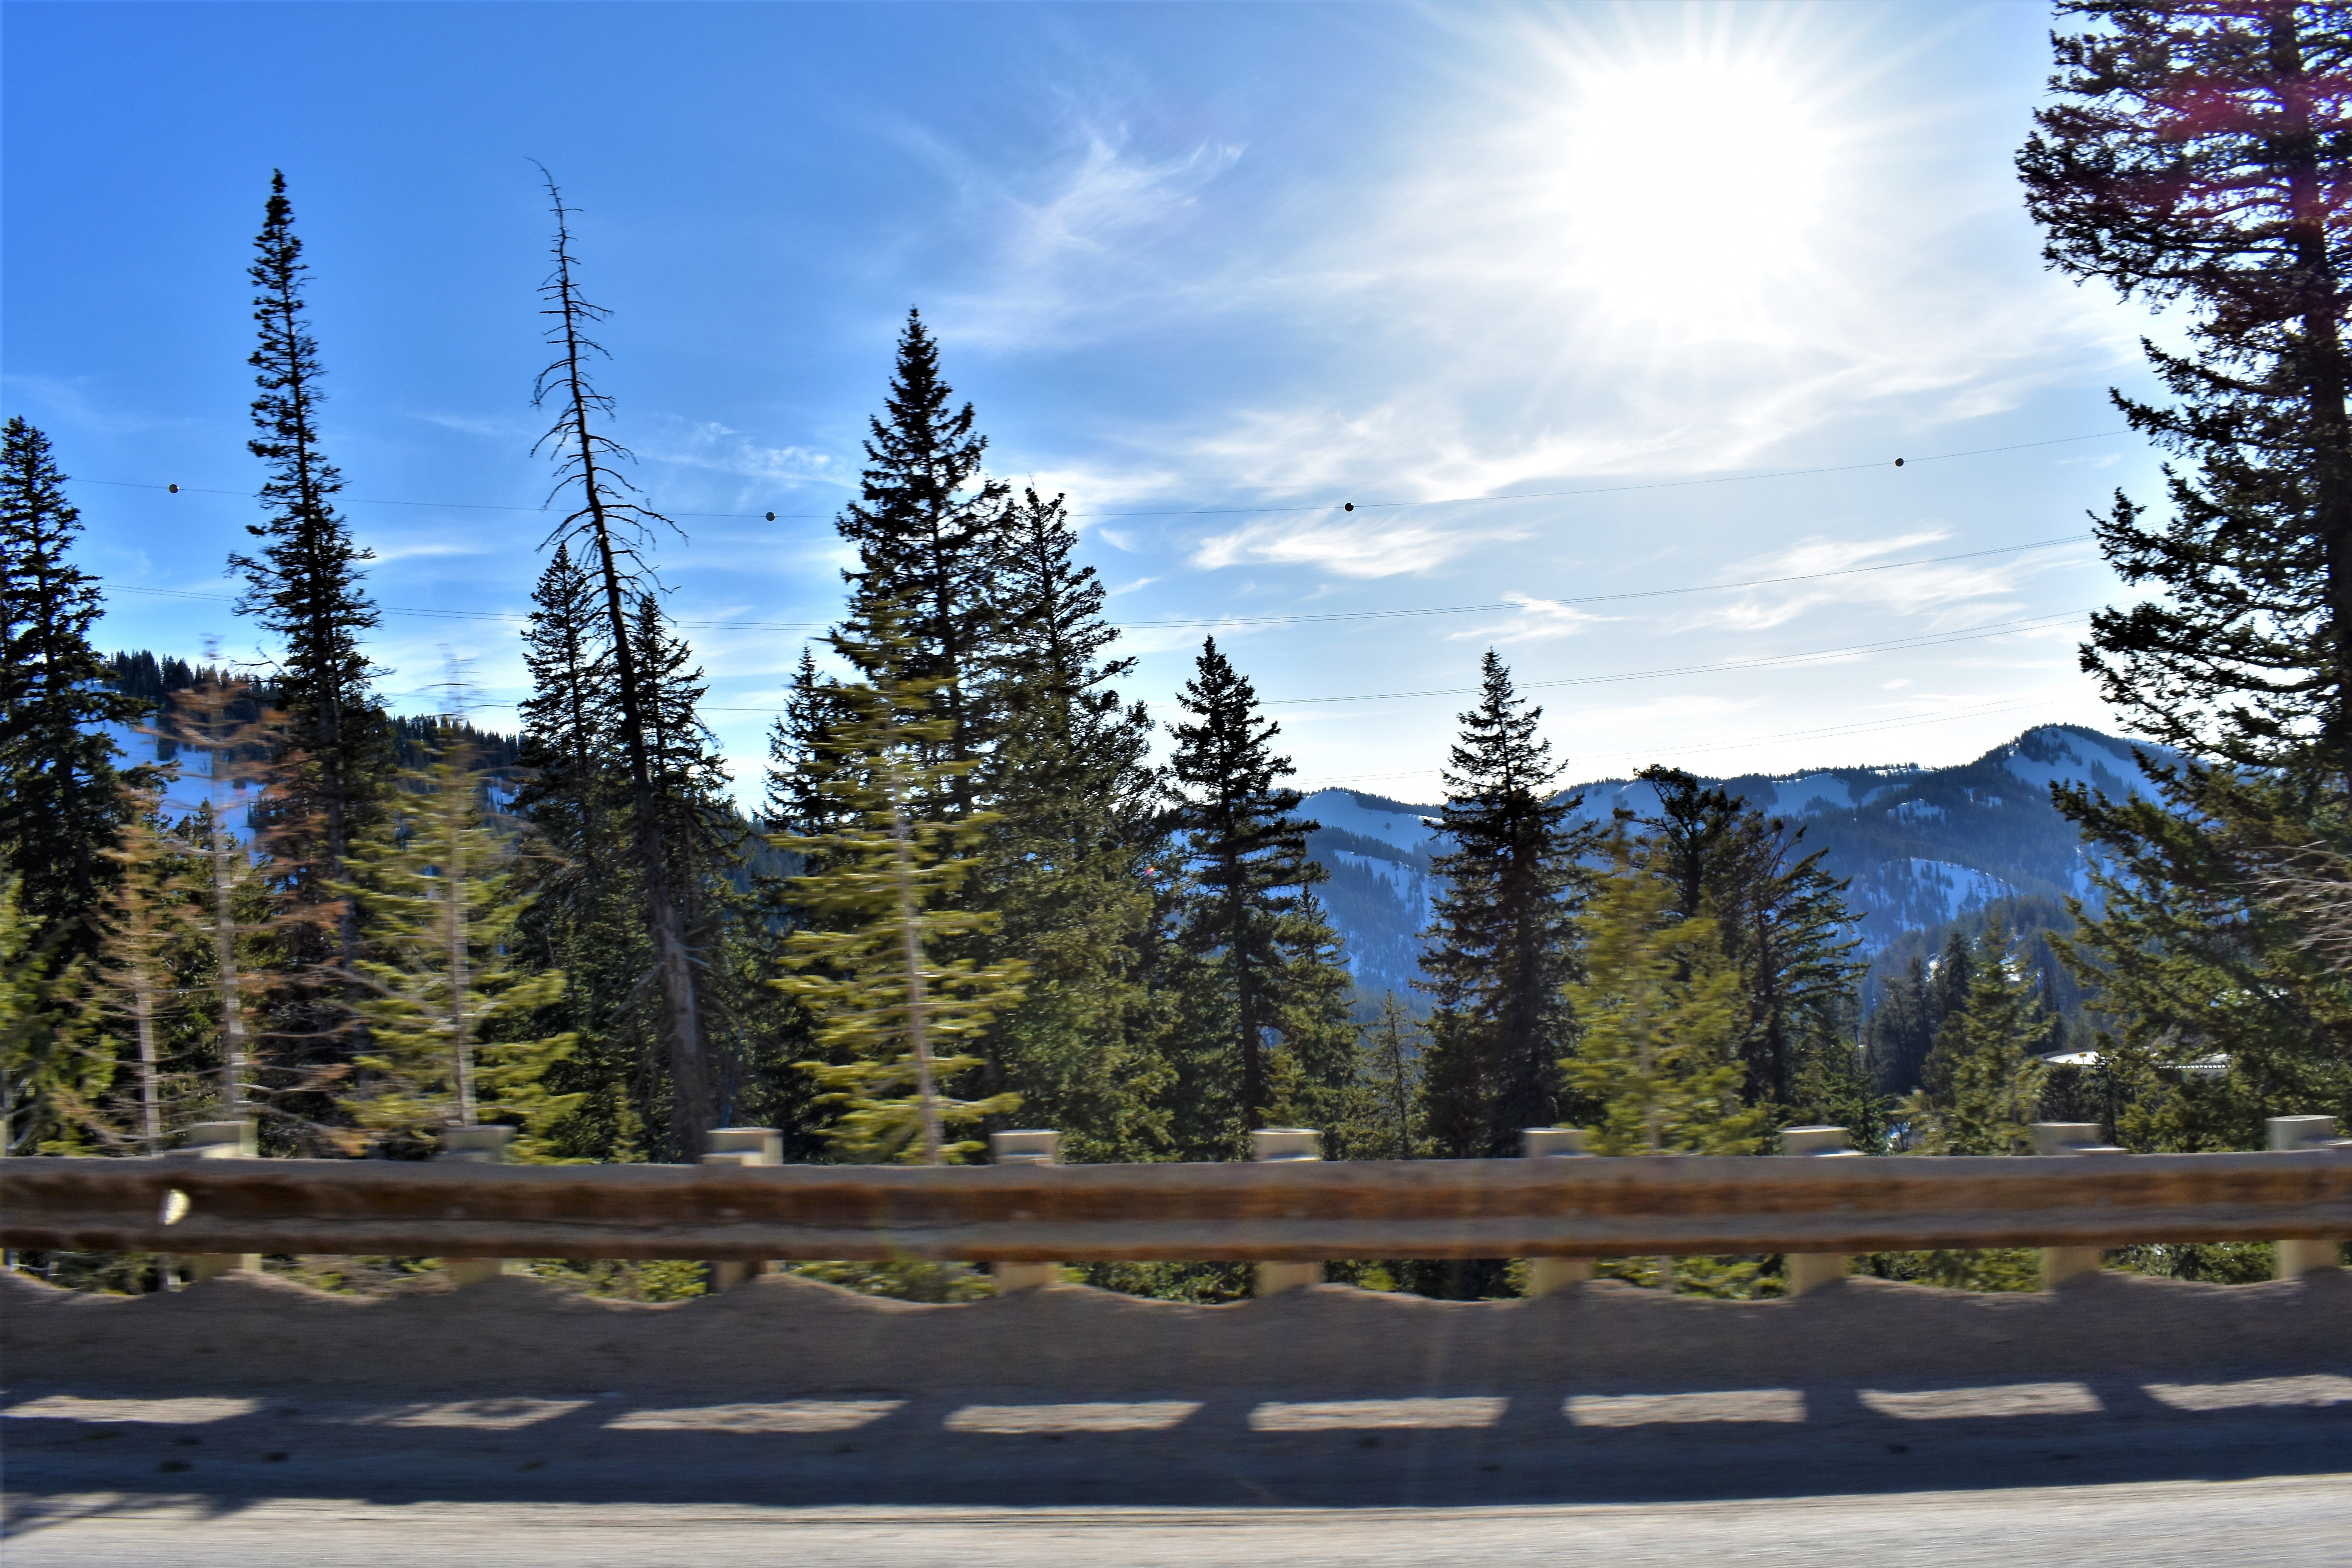 summer road trip ideas the road less traveled - napa know how blog